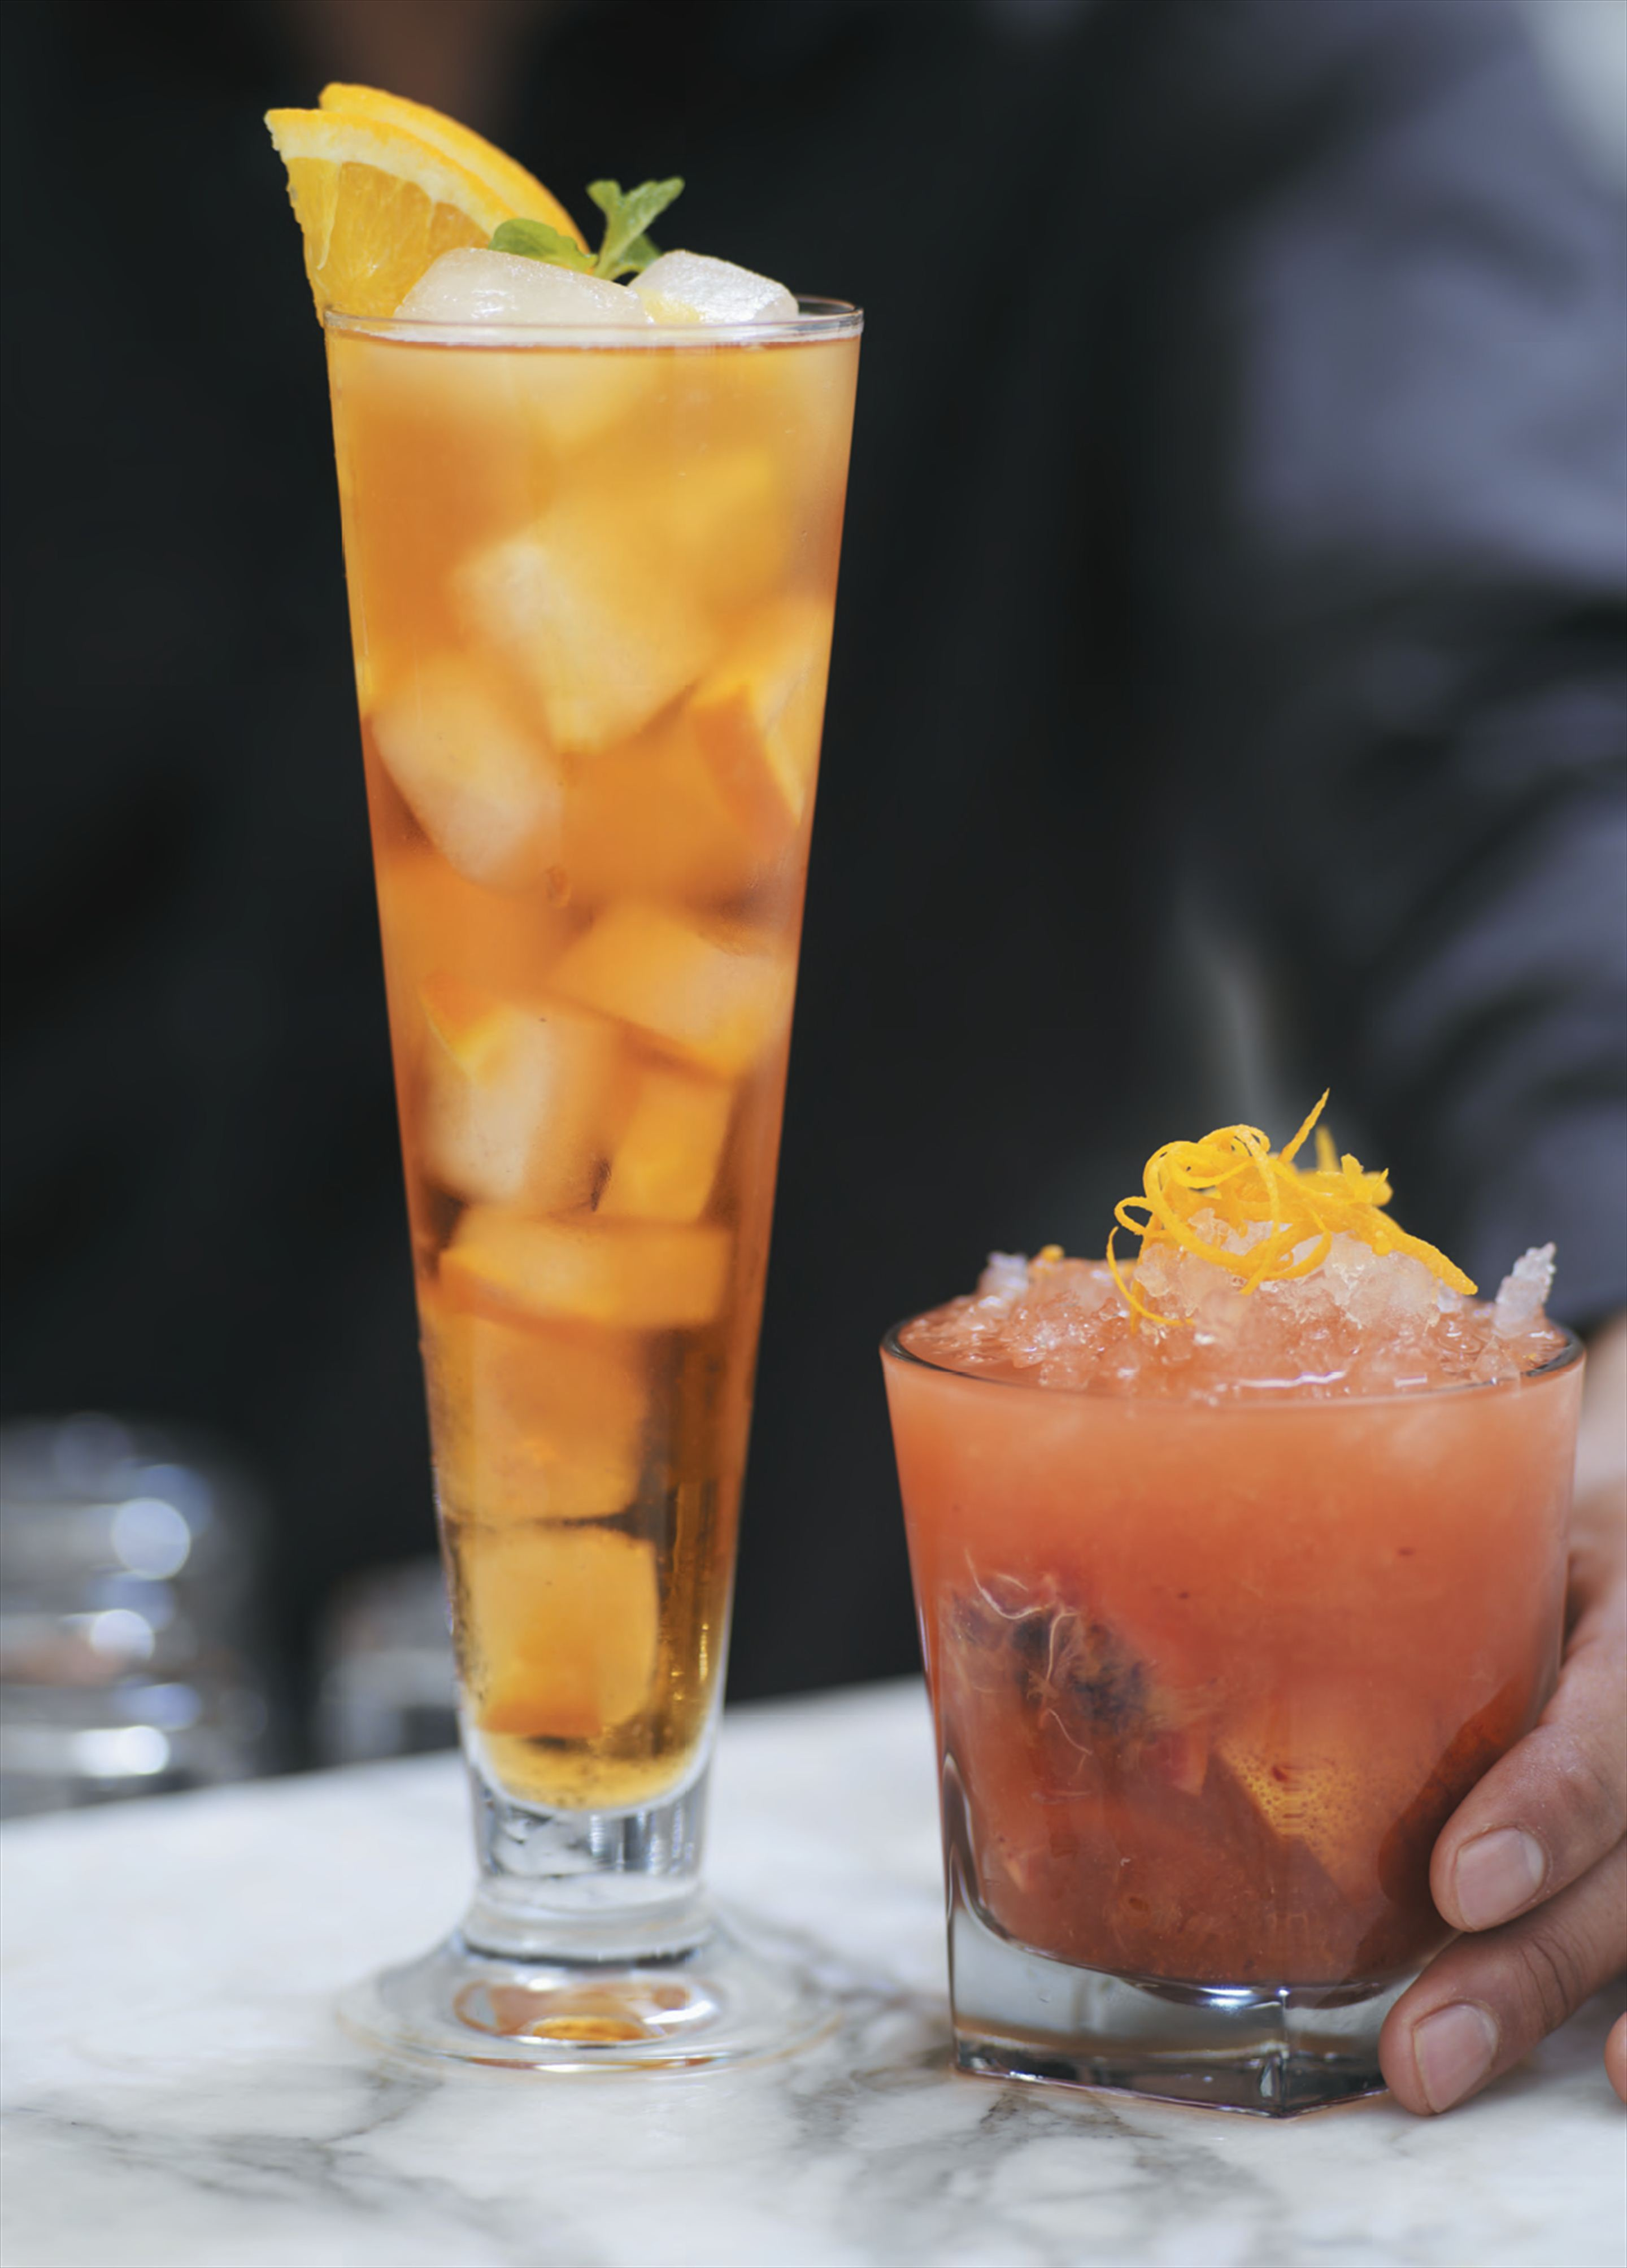 Blood orange caipiroska